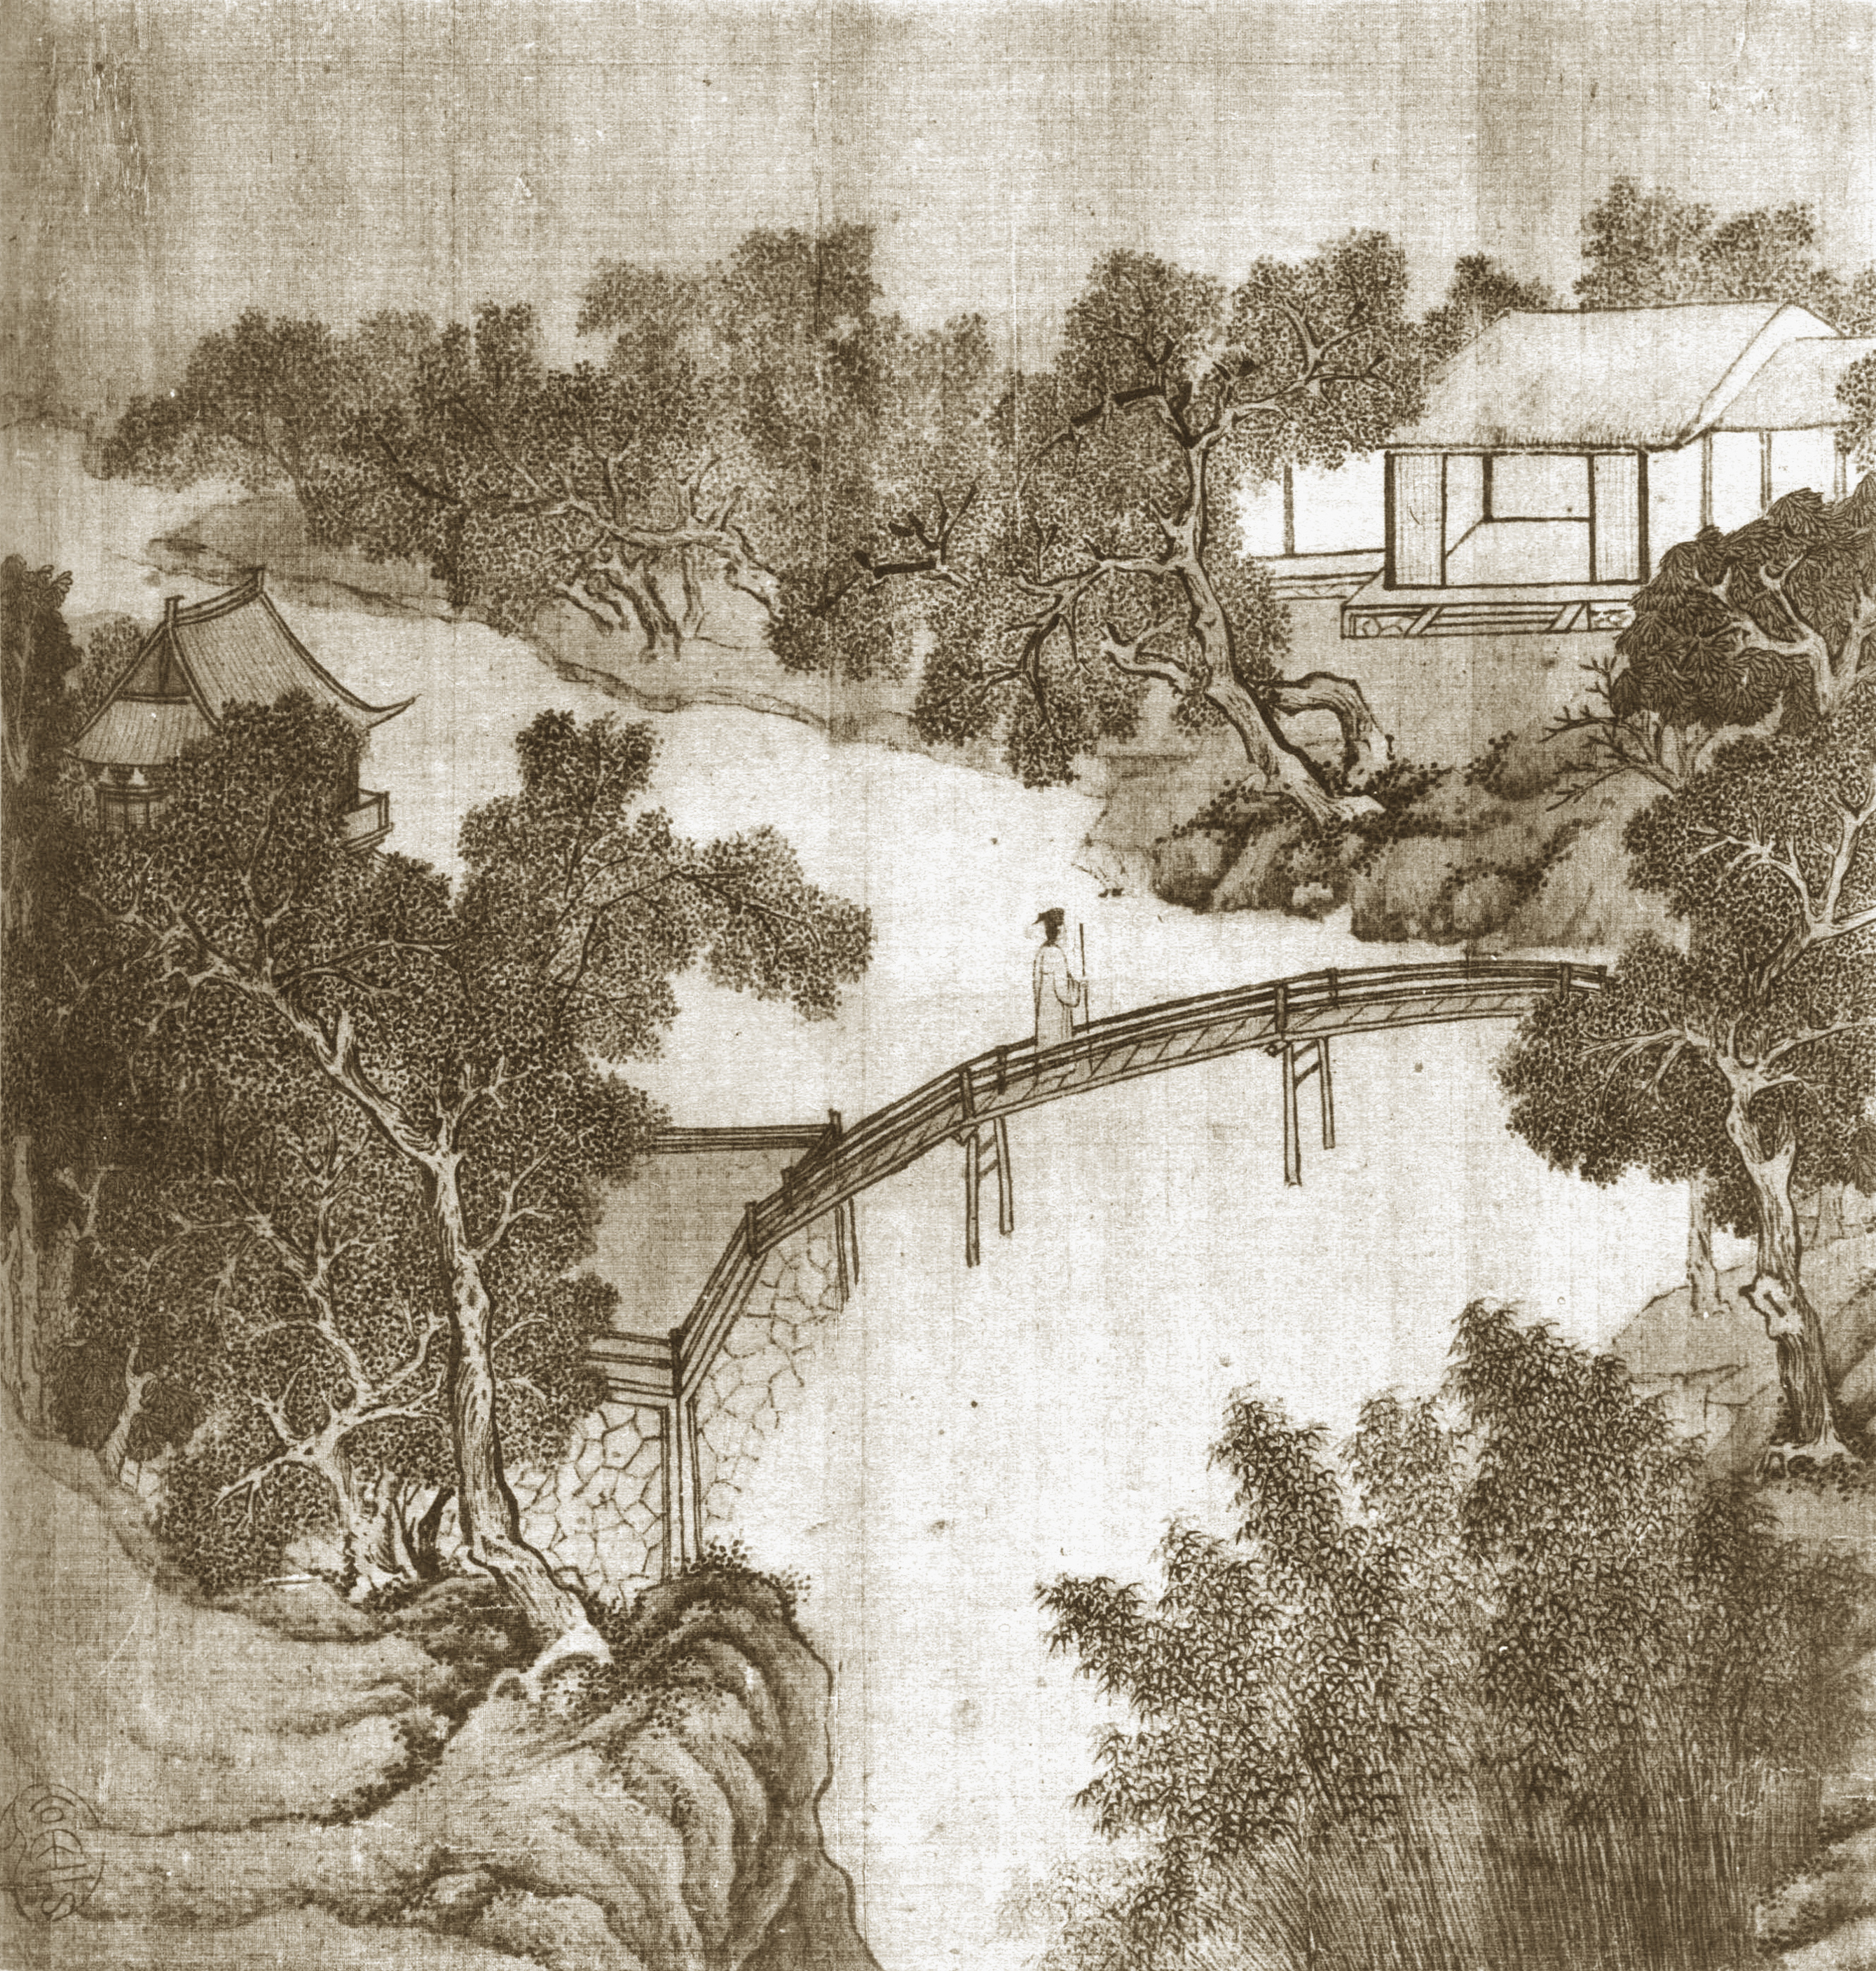 Xiao_Feihong_of_Zhuozhengyuan_Album_by_Wen_Zhengming.jpg